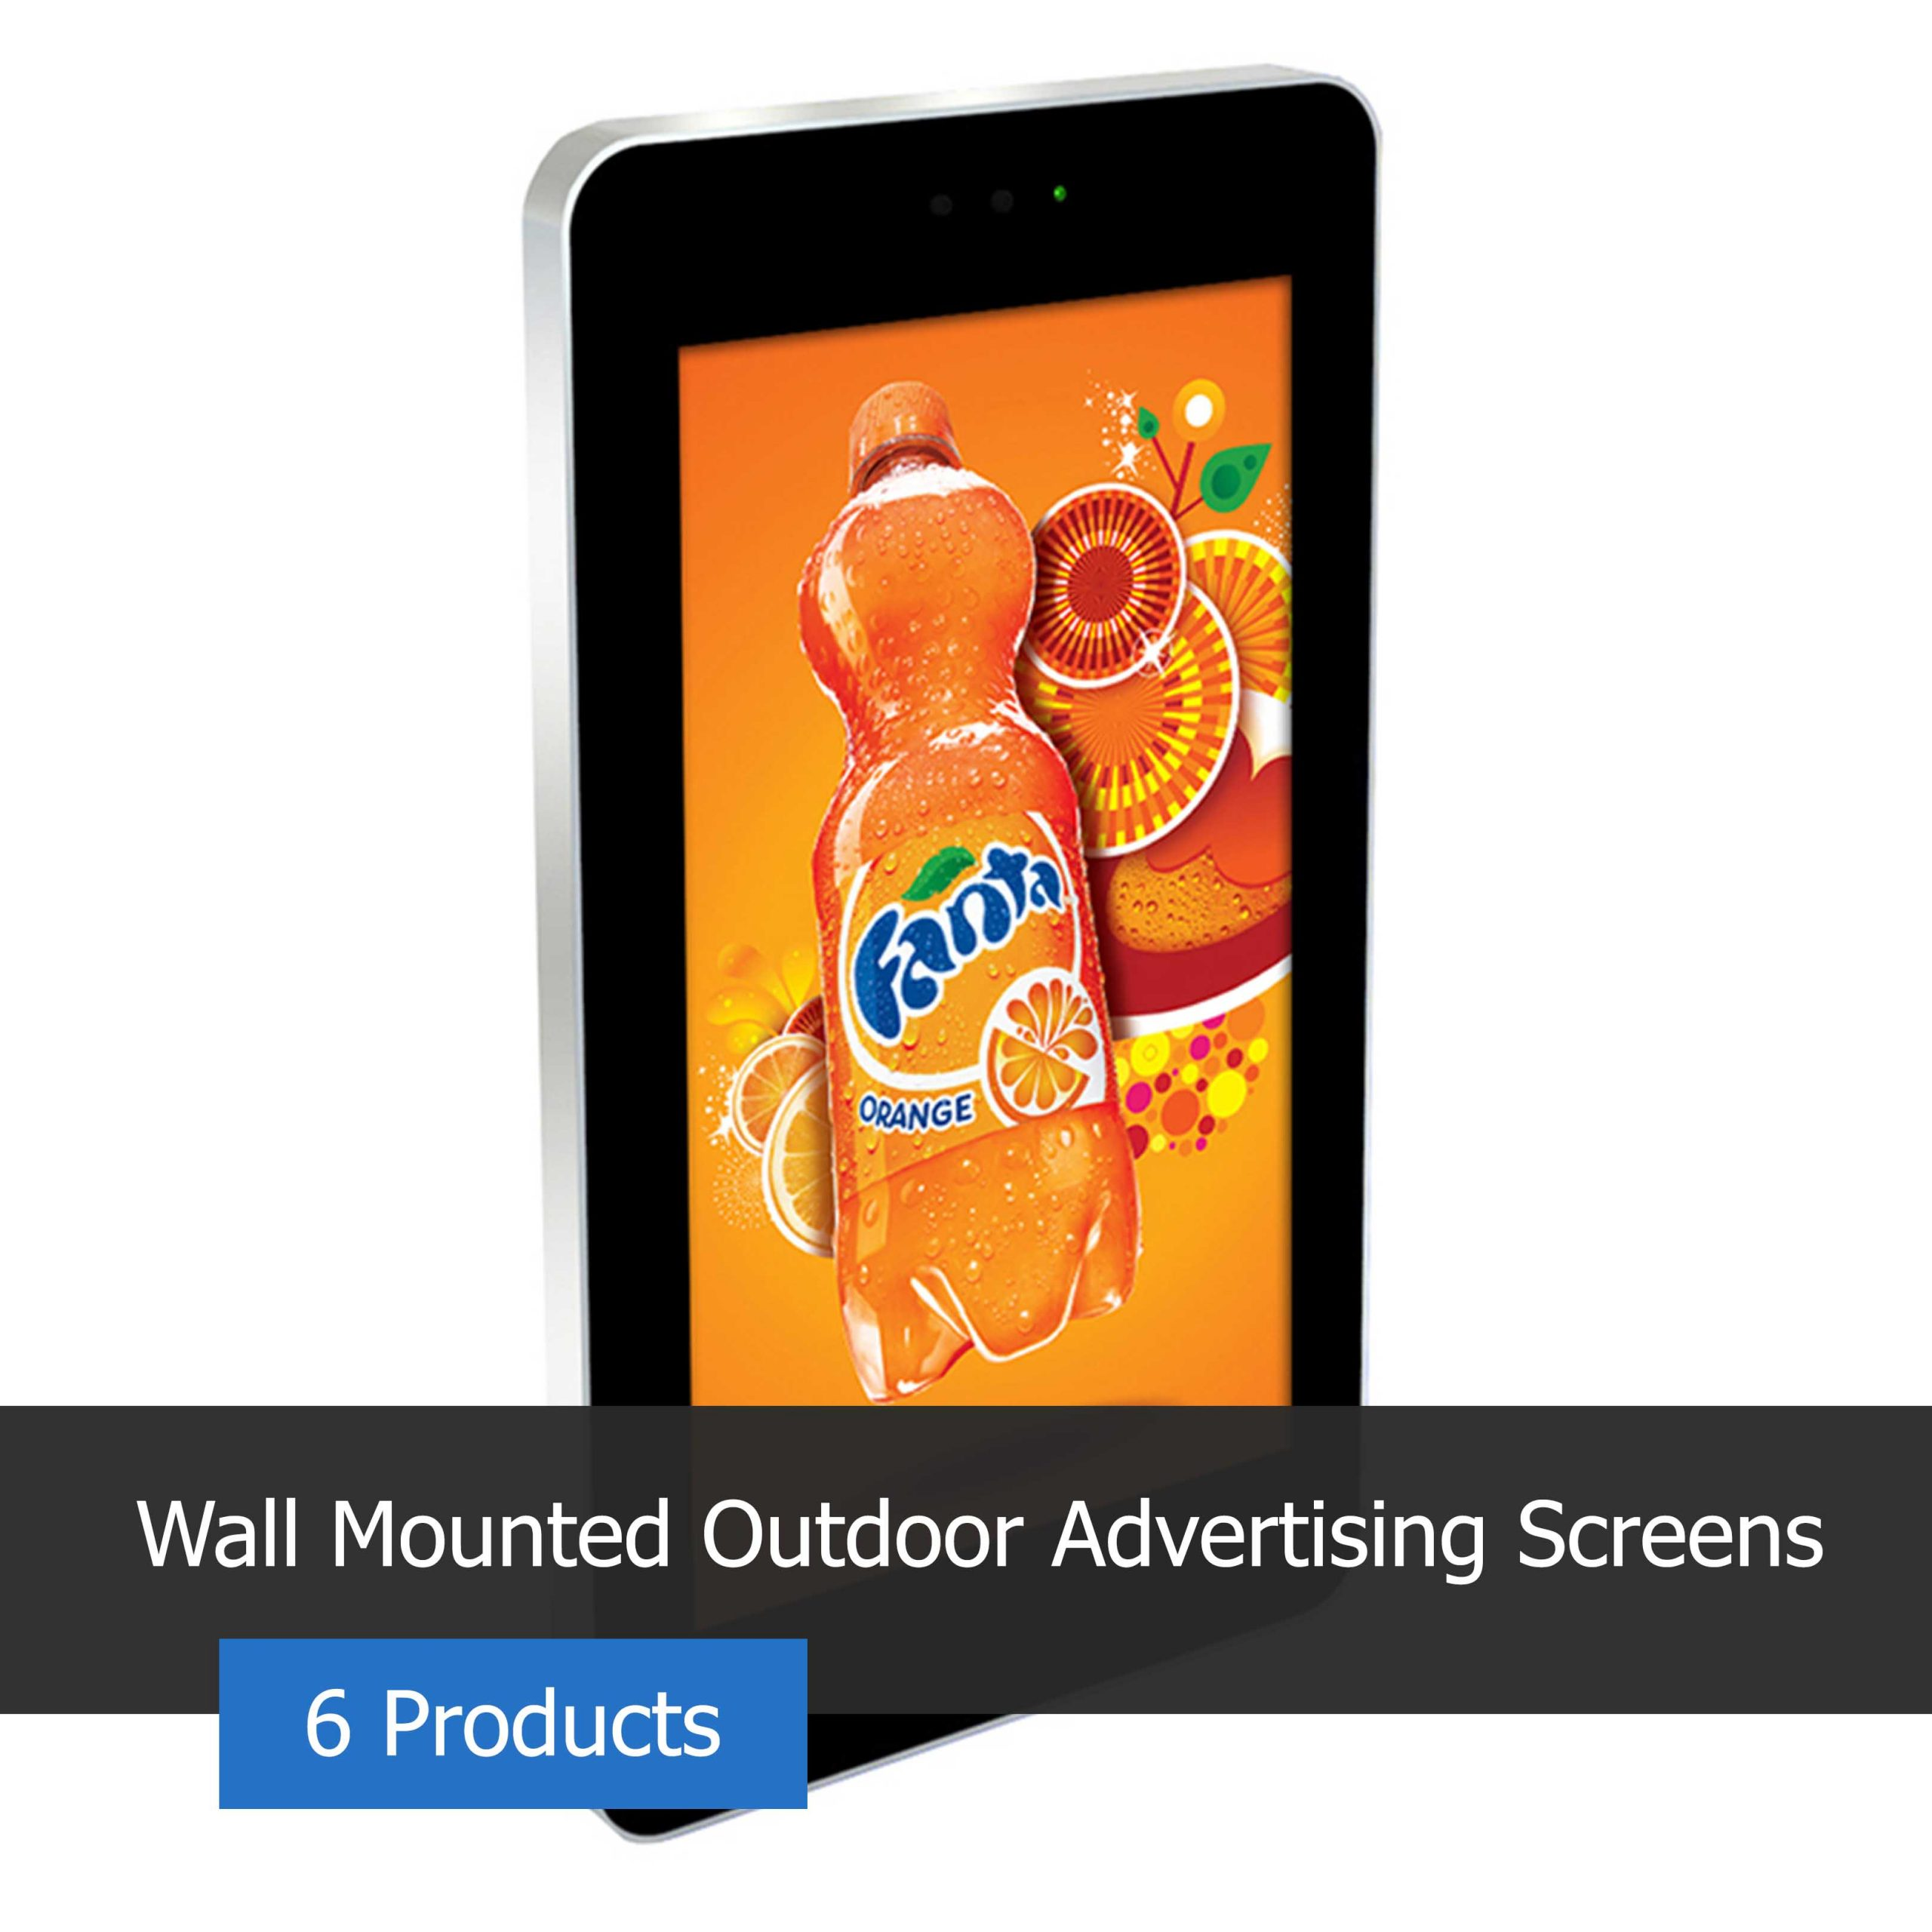 Wall Mounted Outdoor Displays